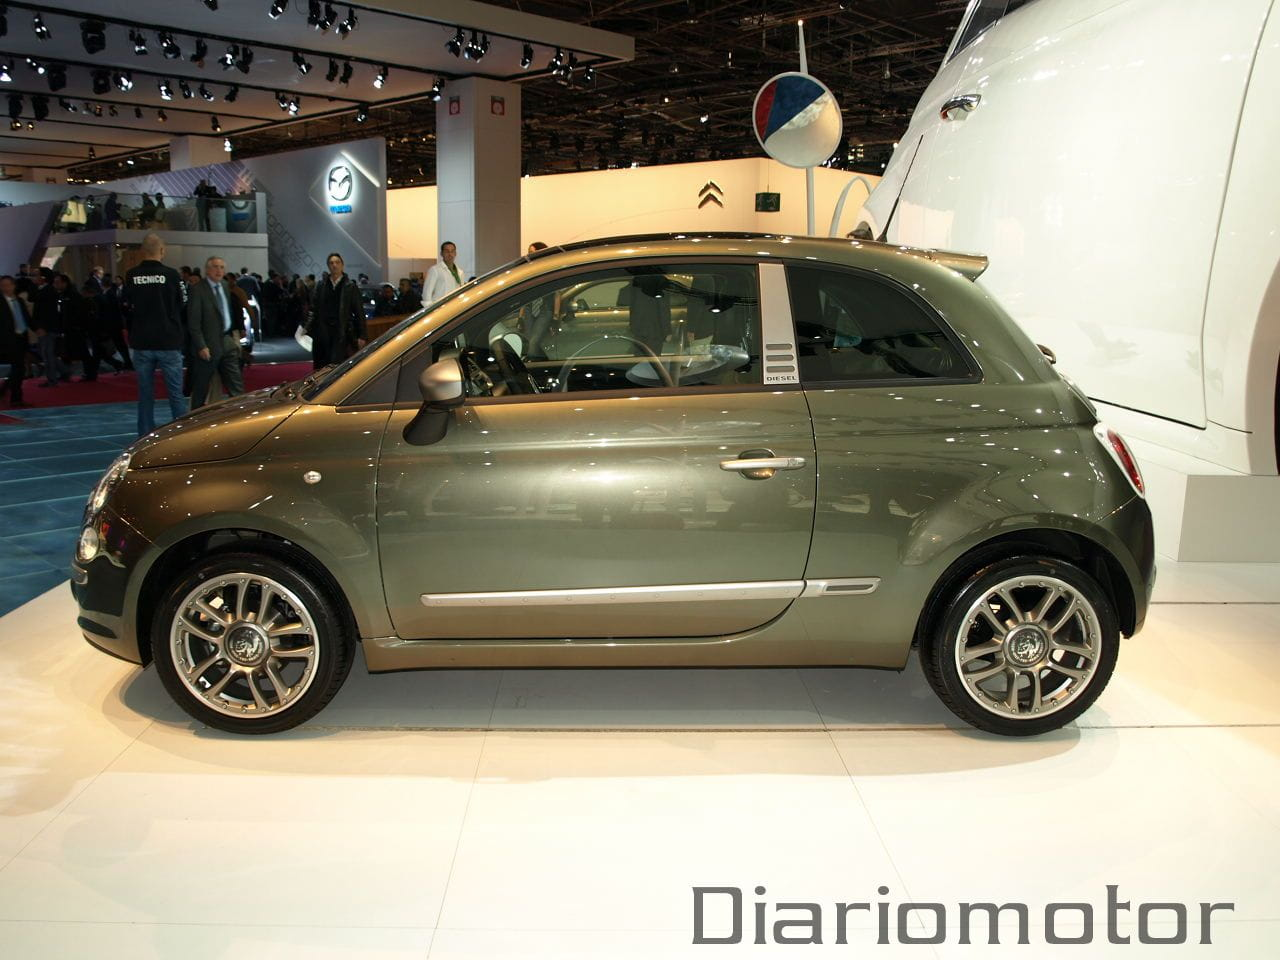 fiat 500 diesel en par s 2008 foto 2 de 13. Black Bedroom Furniture Sets. Home Design Ideas